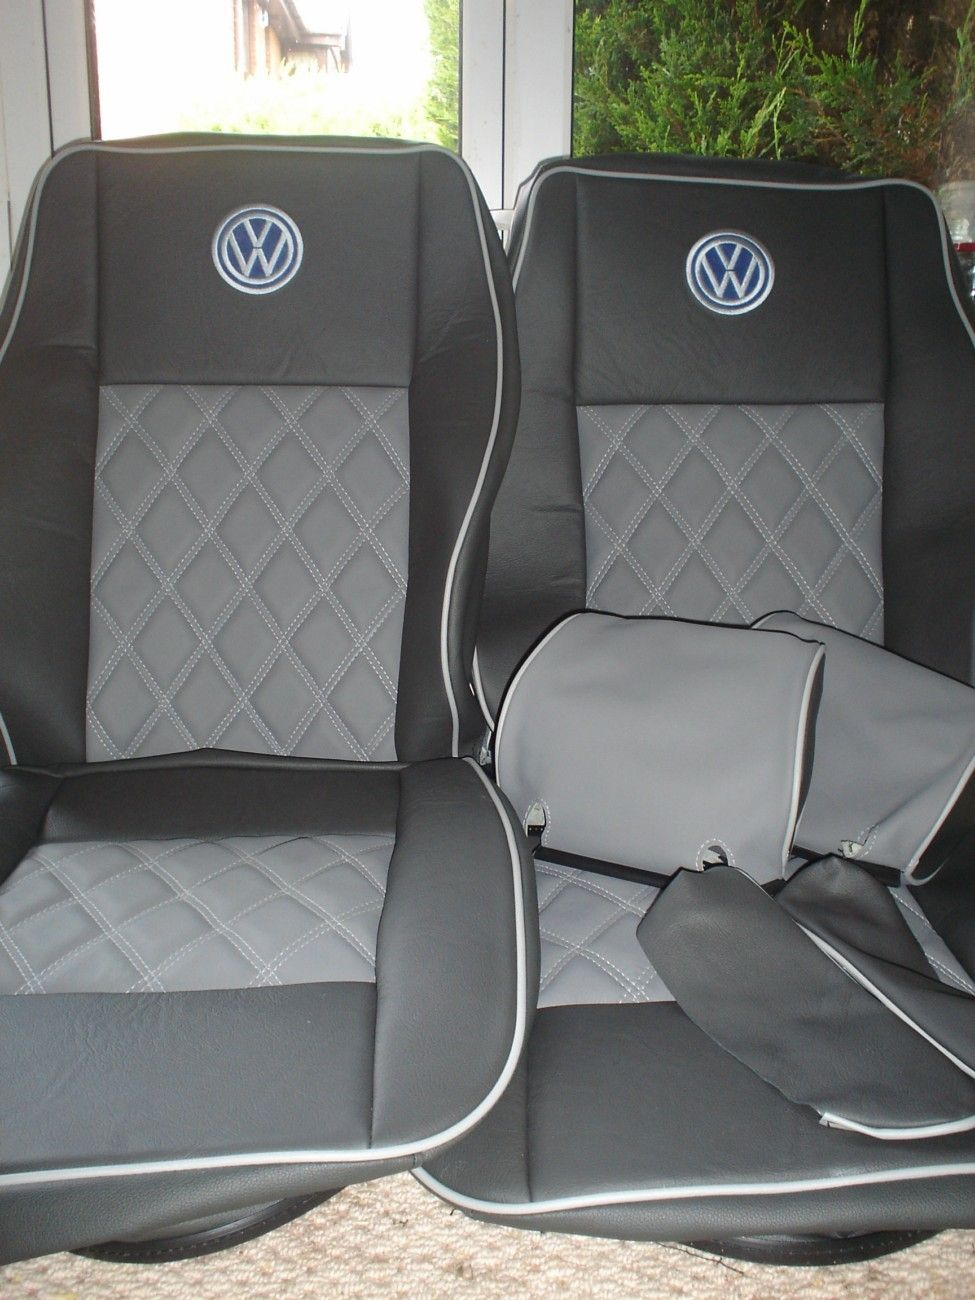 classic vw beetle rear seat home vw transporter covers volkswagens pinterest classic. Black Bedroom Furniture Sets. Home Design Ideas